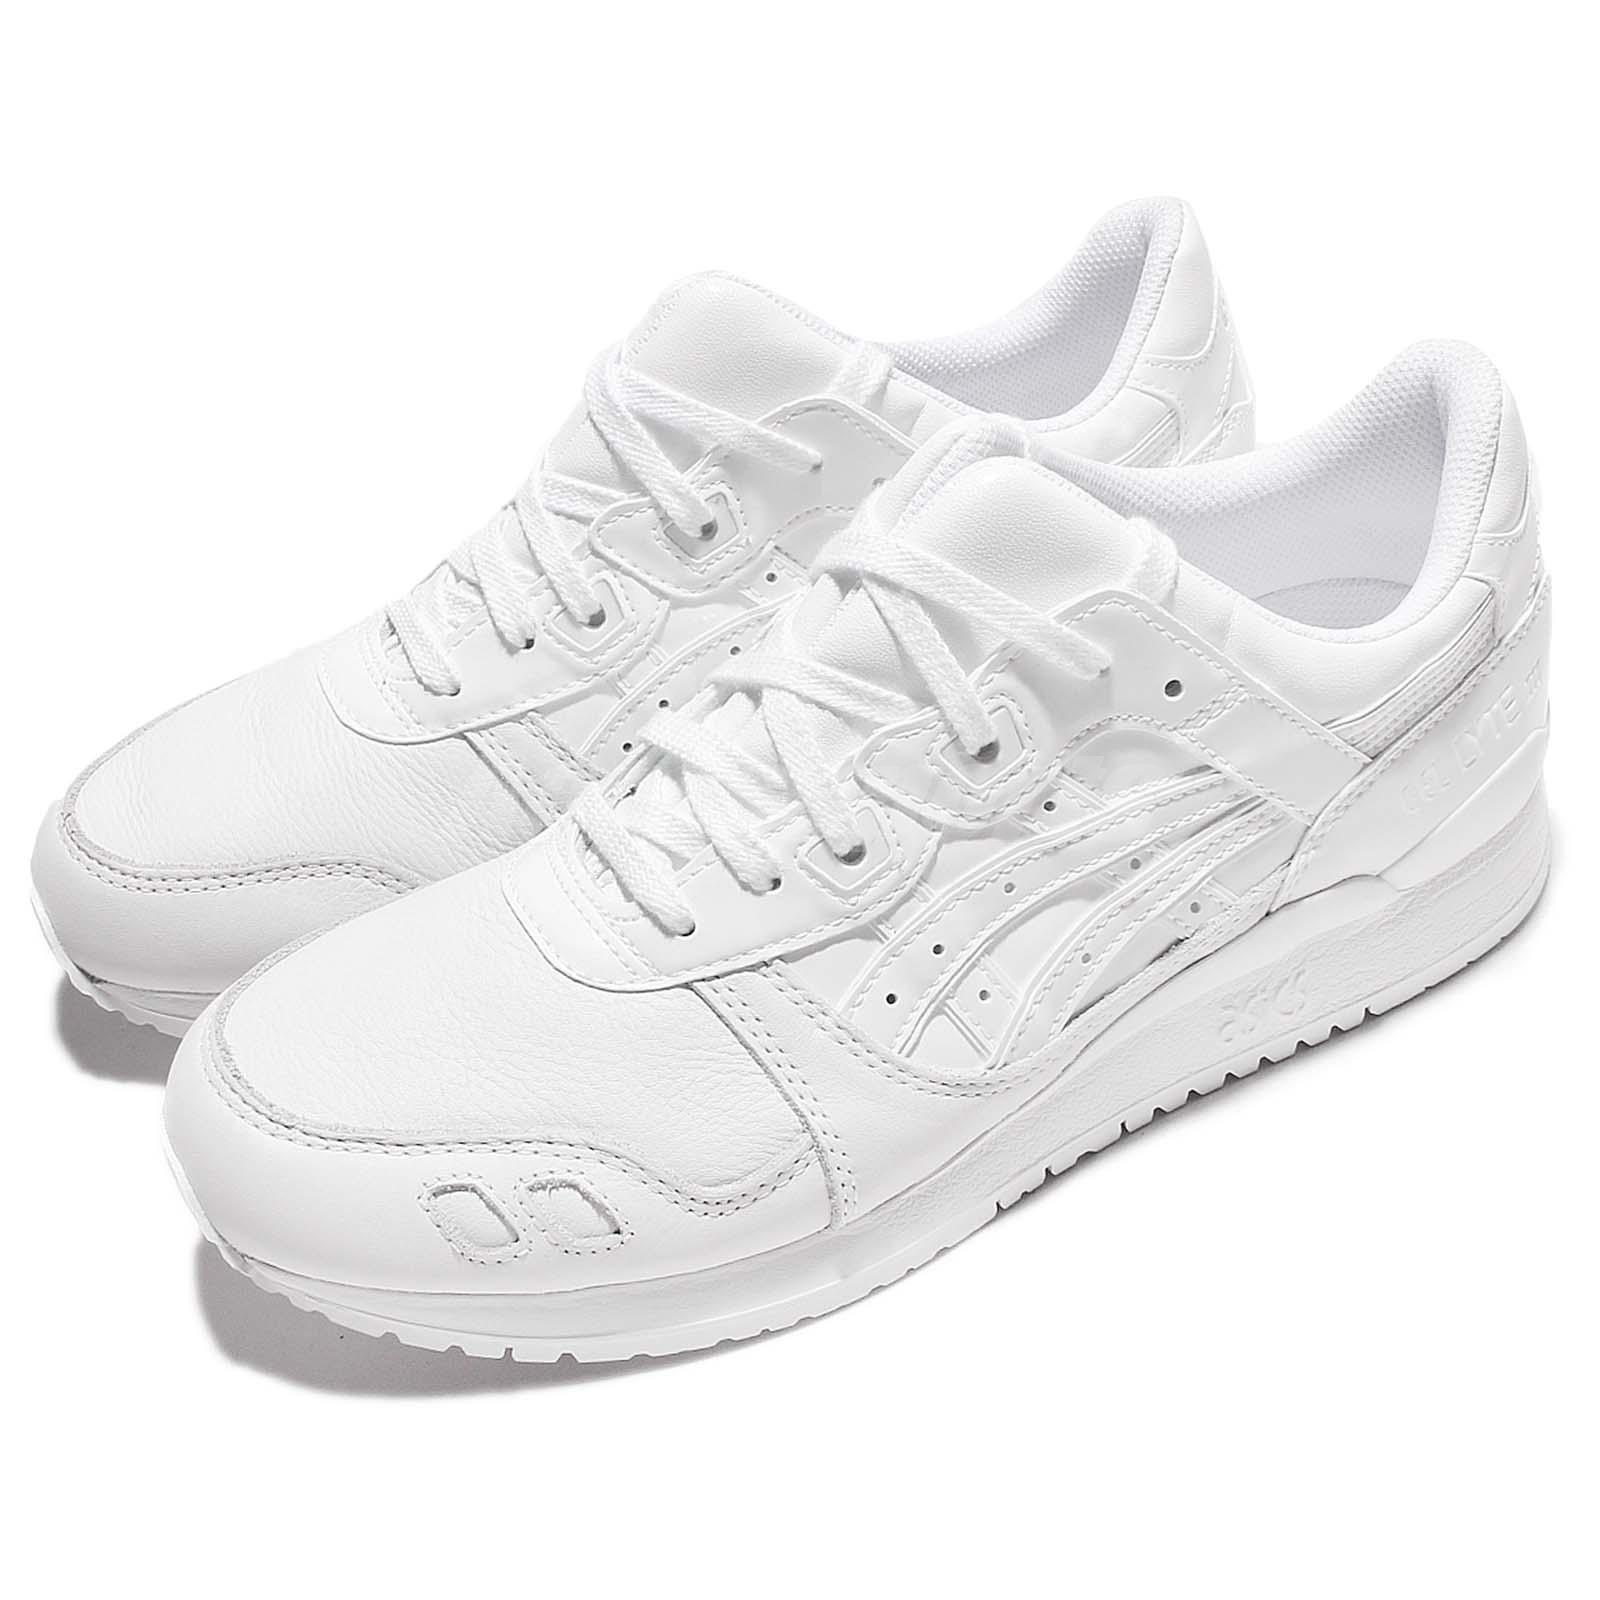 Details about Asics Tiger Gel Lyte III 3 Triple White Men Running Shoes Sneakers H7E1Y 0101